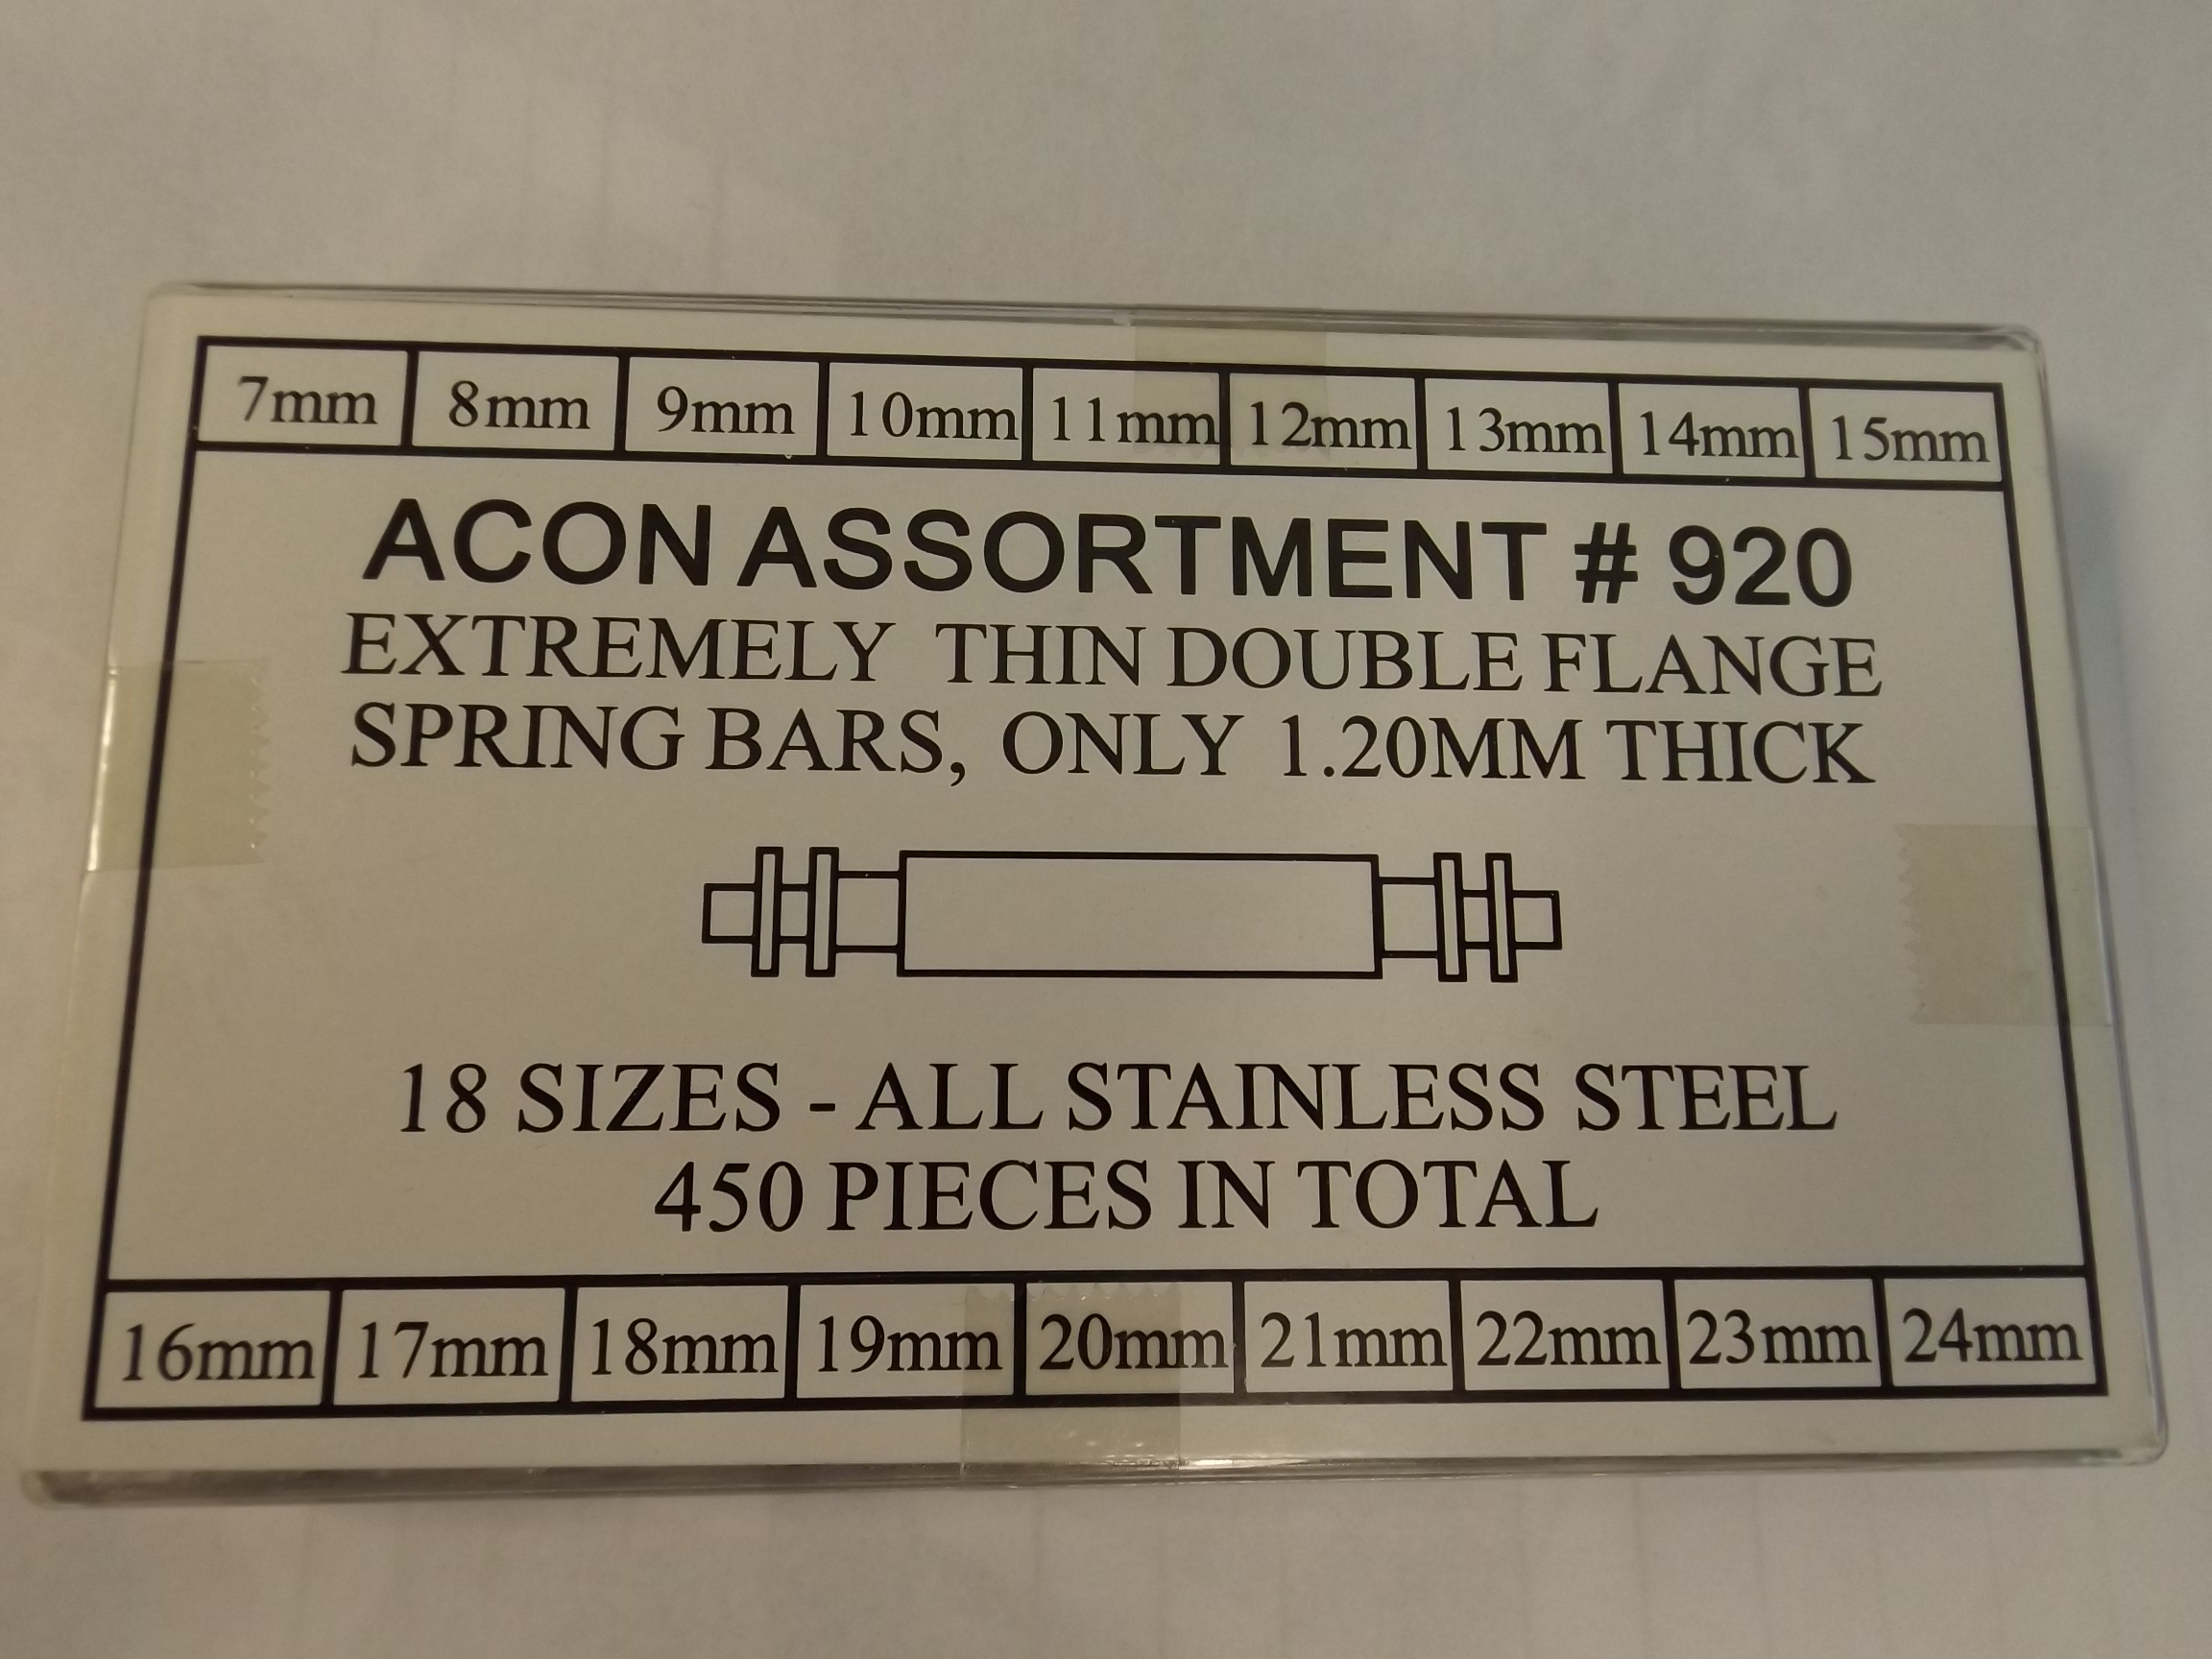 XSB920A Acon Extremely Thin 1.20mm Double Flange 450 piece Spring Bar Assortment